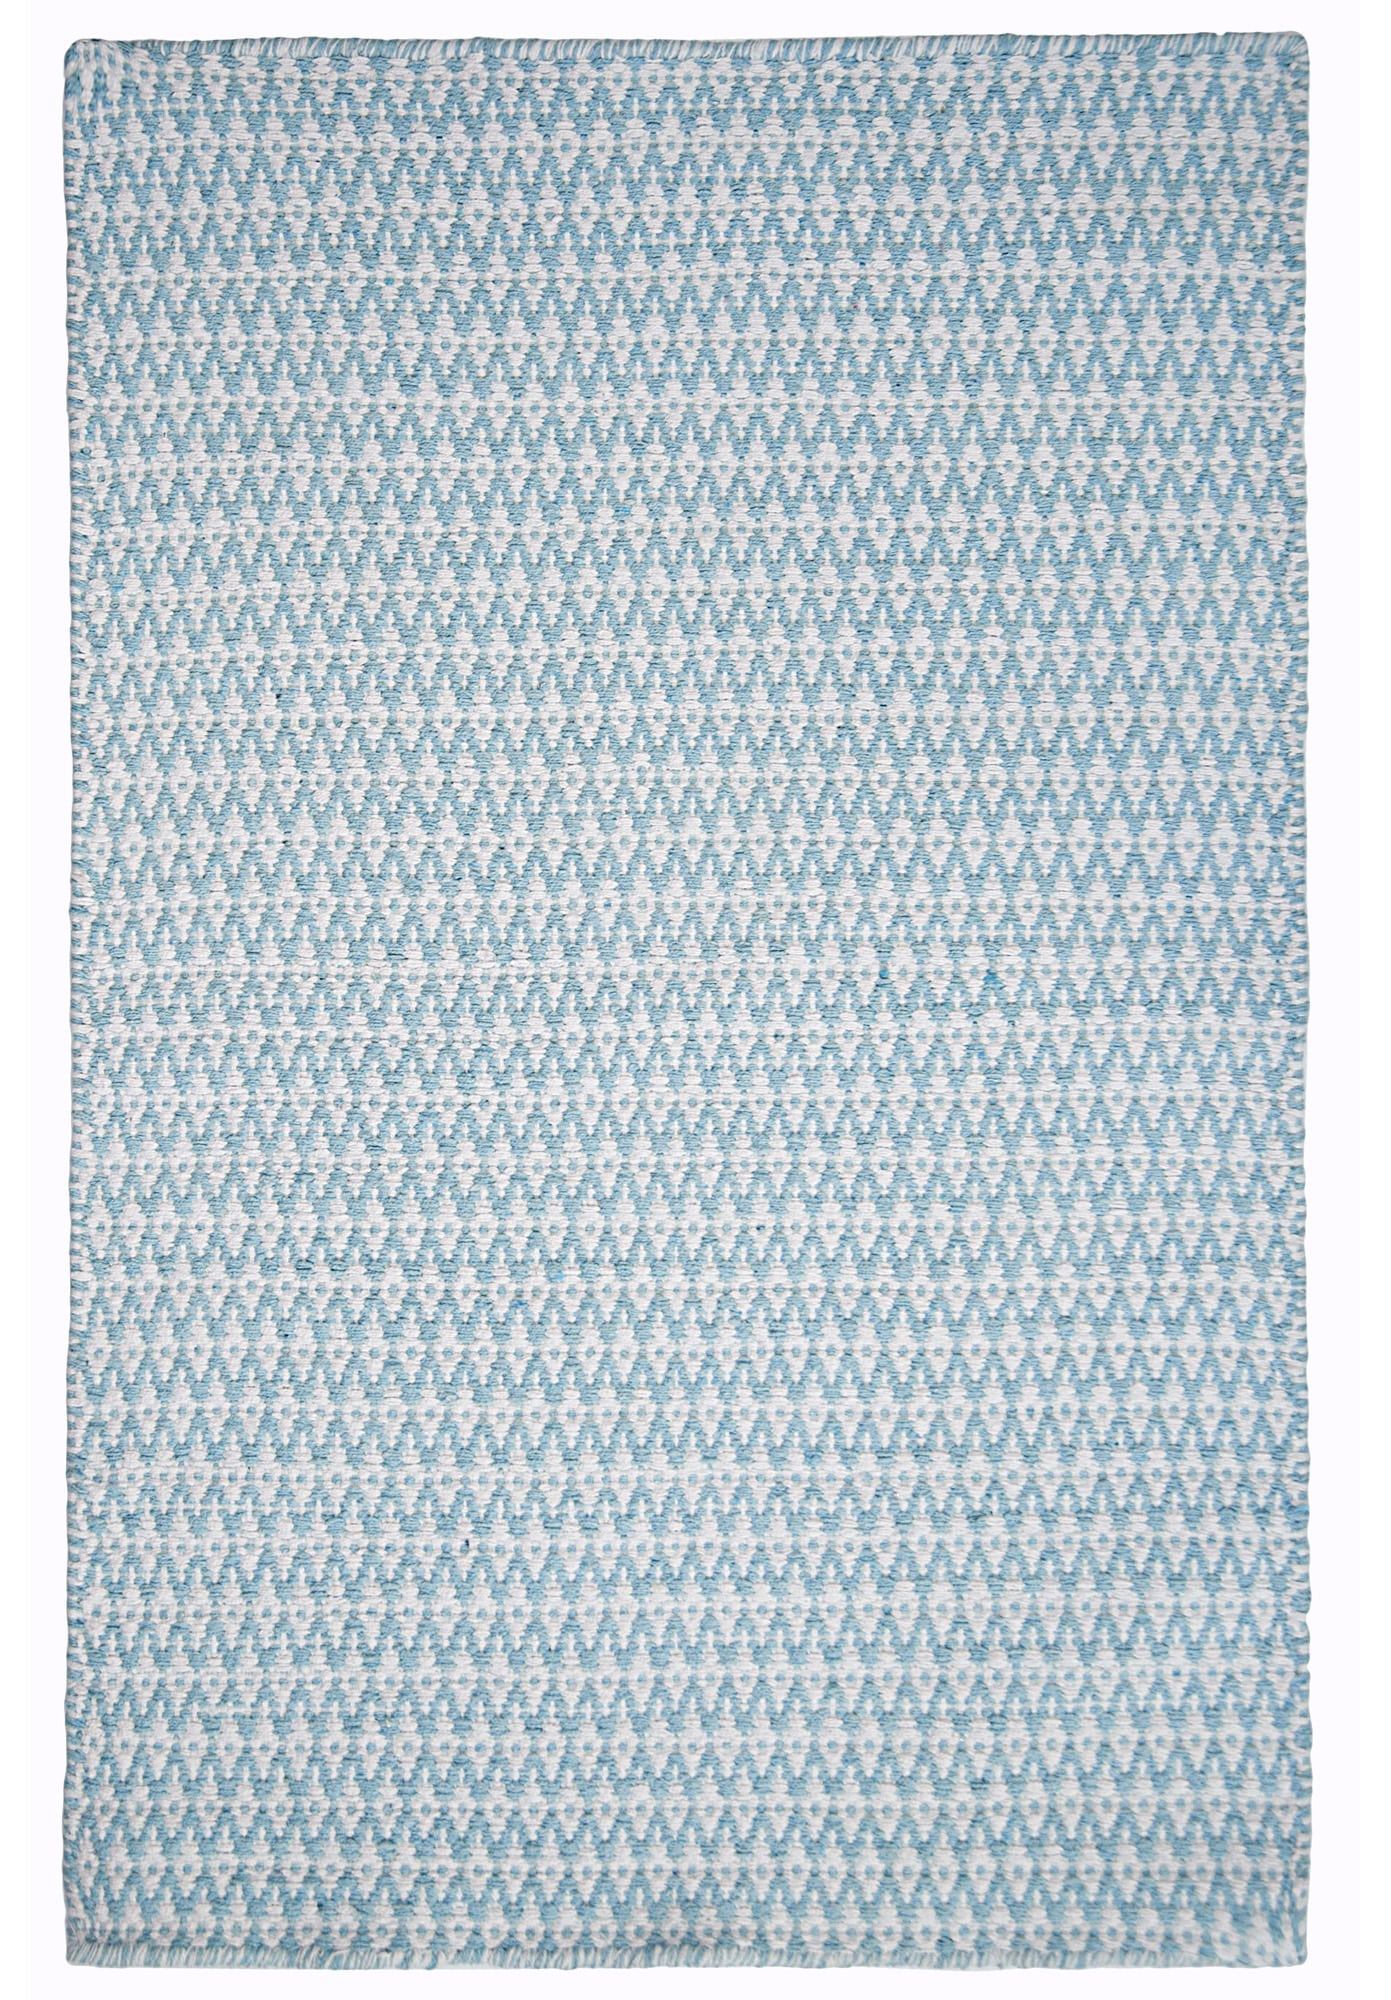 ... Rug-Ashley-lightblue-white-corner- ... - Ashley Eco Cotton Rug - Light Blue / White - Hook & Loom